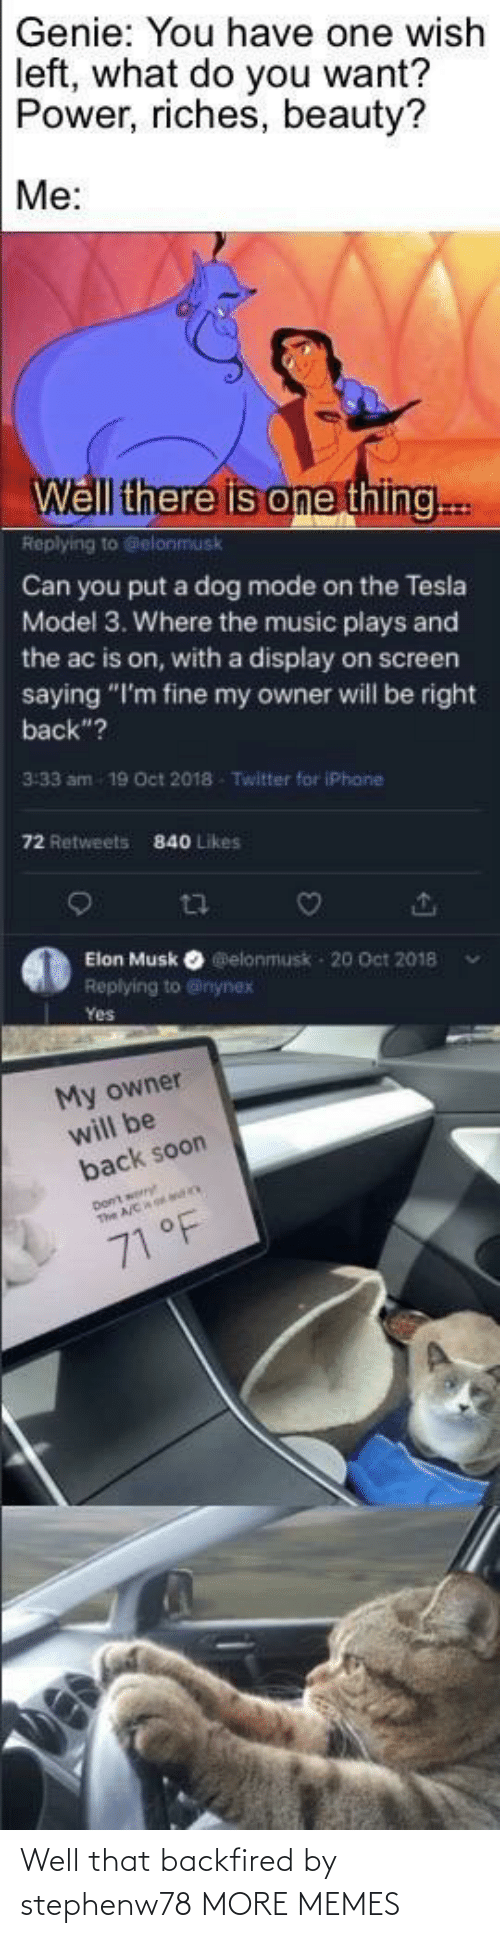 "Screen: Genie: You have one wish  left, what do you want?  Power, riches, beauty?  Me:  Well there is one thing..  Replying to Gelonmusk  Can you put a dog mode on the Tesla  Model 3. Where the music plays and  the ac is on, with a display on screen  saying ""I'm fine my owner will be right  back""?  3:33 am  19 Oct 2018  Twitter for iPhane  72 Retweets  840 Likes  Elon Musk O elonmusk - 20 Oct 2018  Replying to @inynex  Yes  My owner  will be  back soon  71 °F Well that backfired by stephenw78 MORE MEMES"